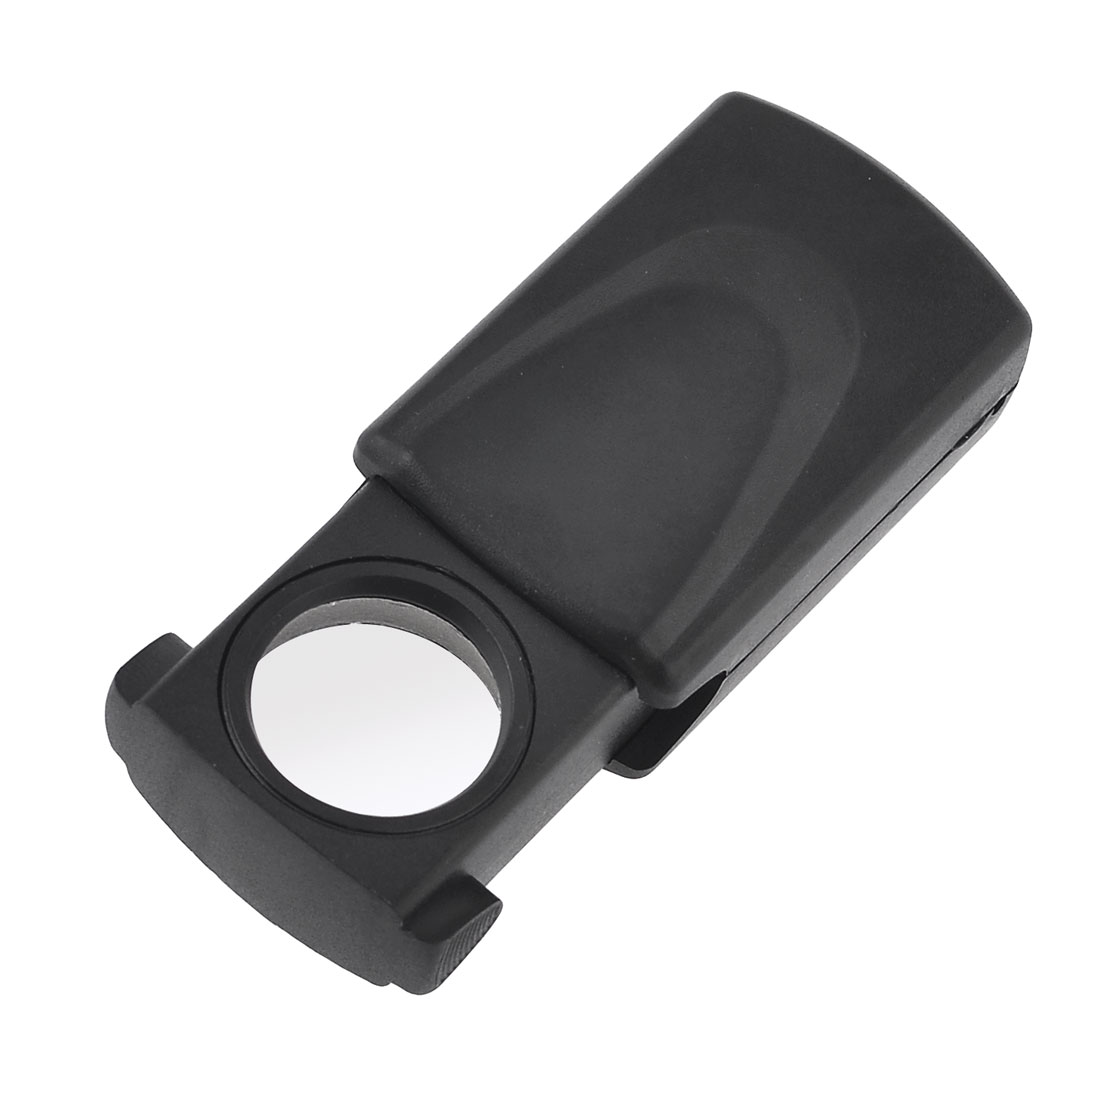 30X Magnification White LED Light Pull-type Jewelry Magnifier Loupe